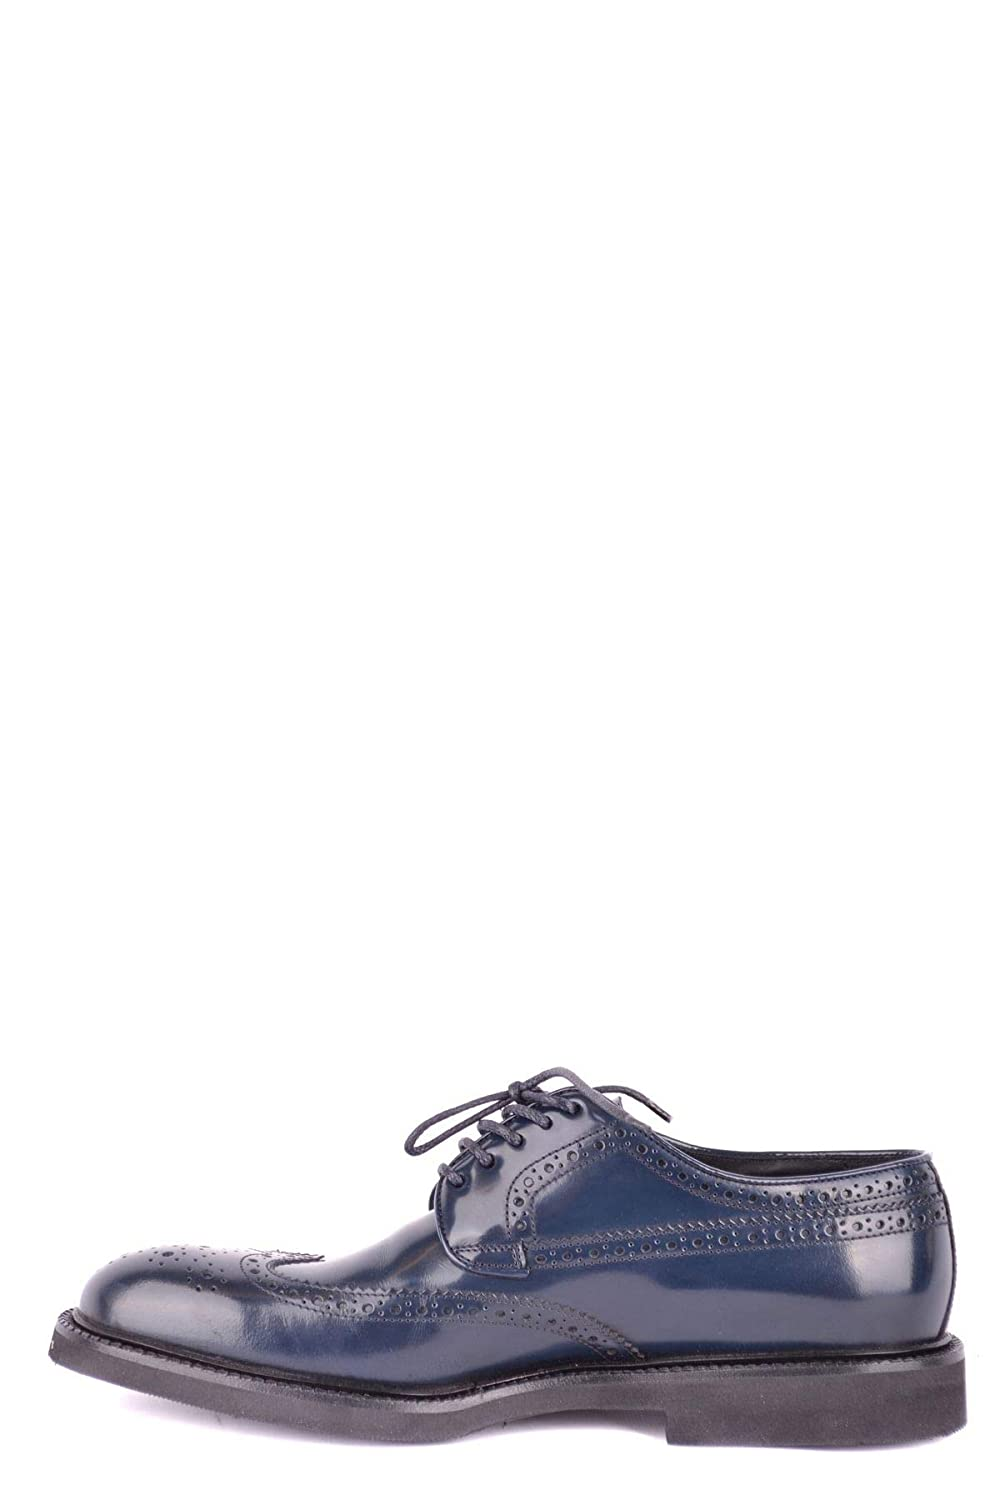 HOLBENS Luxury Fashion Mens LACE-UP Shoes Spring Blue J